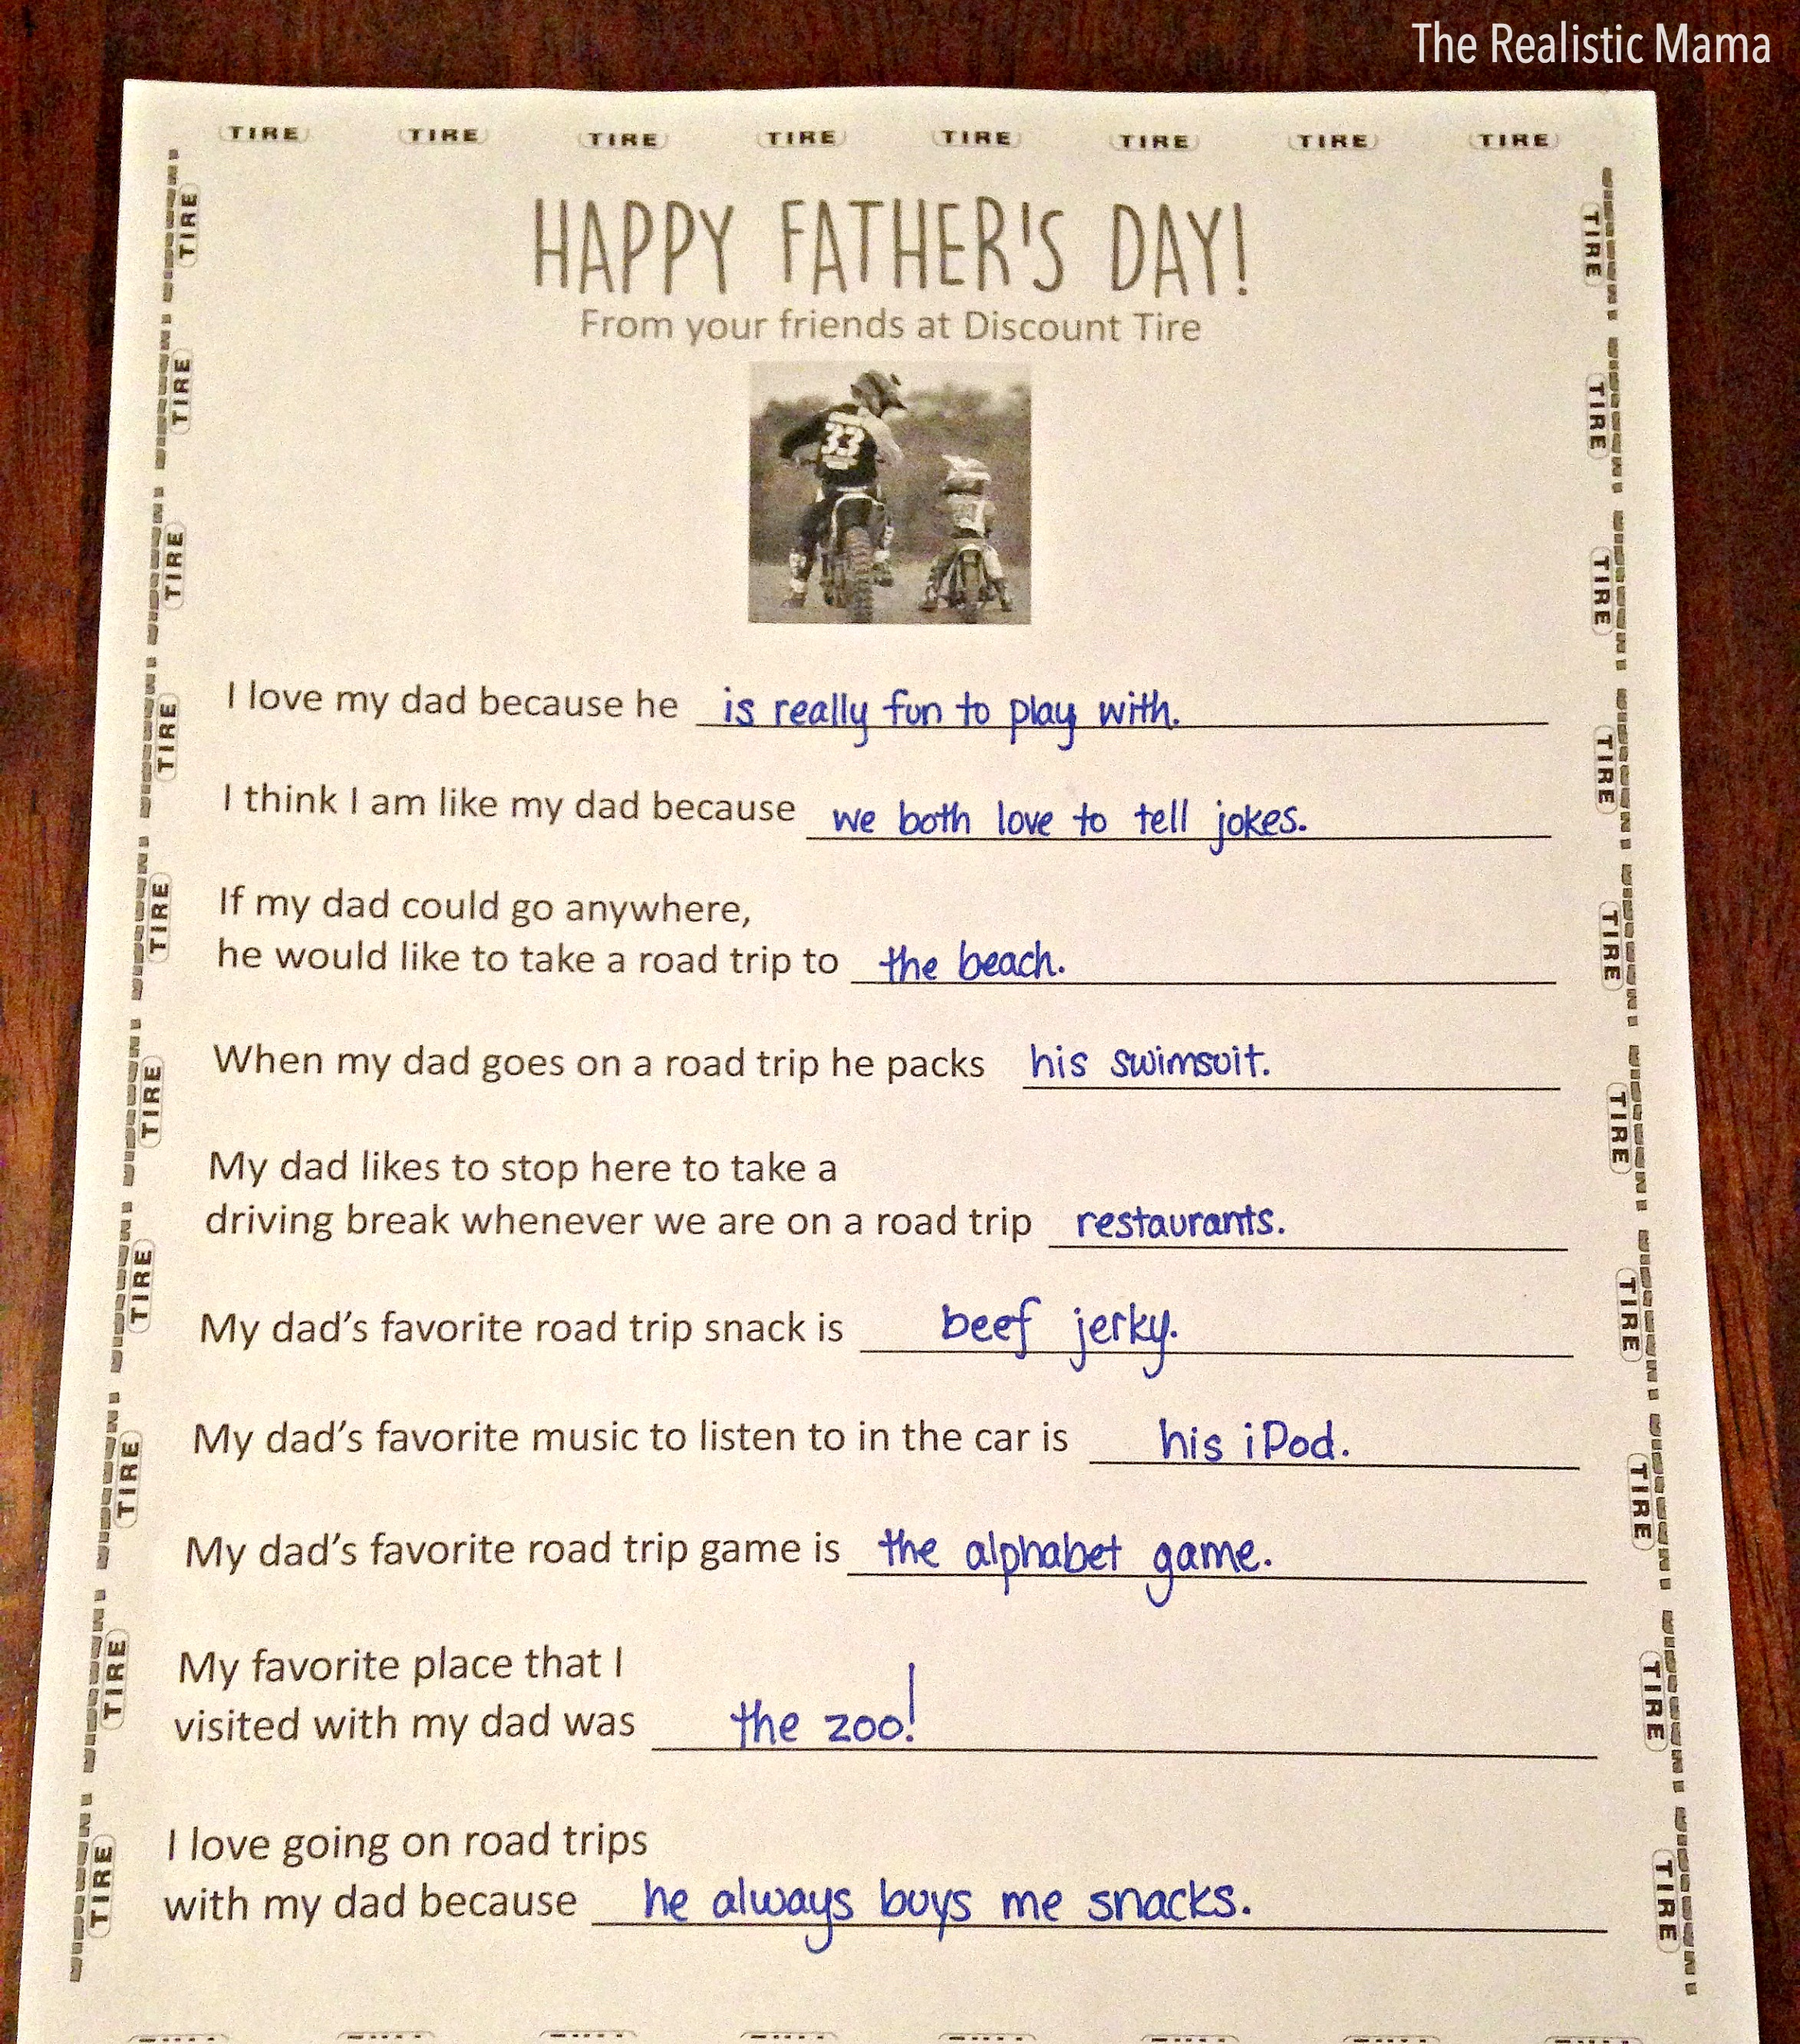 photograph regarding Father's Day Questionnaire Printable called No cost Fathers Working day Questionnaire Printable - The Sensible Mama